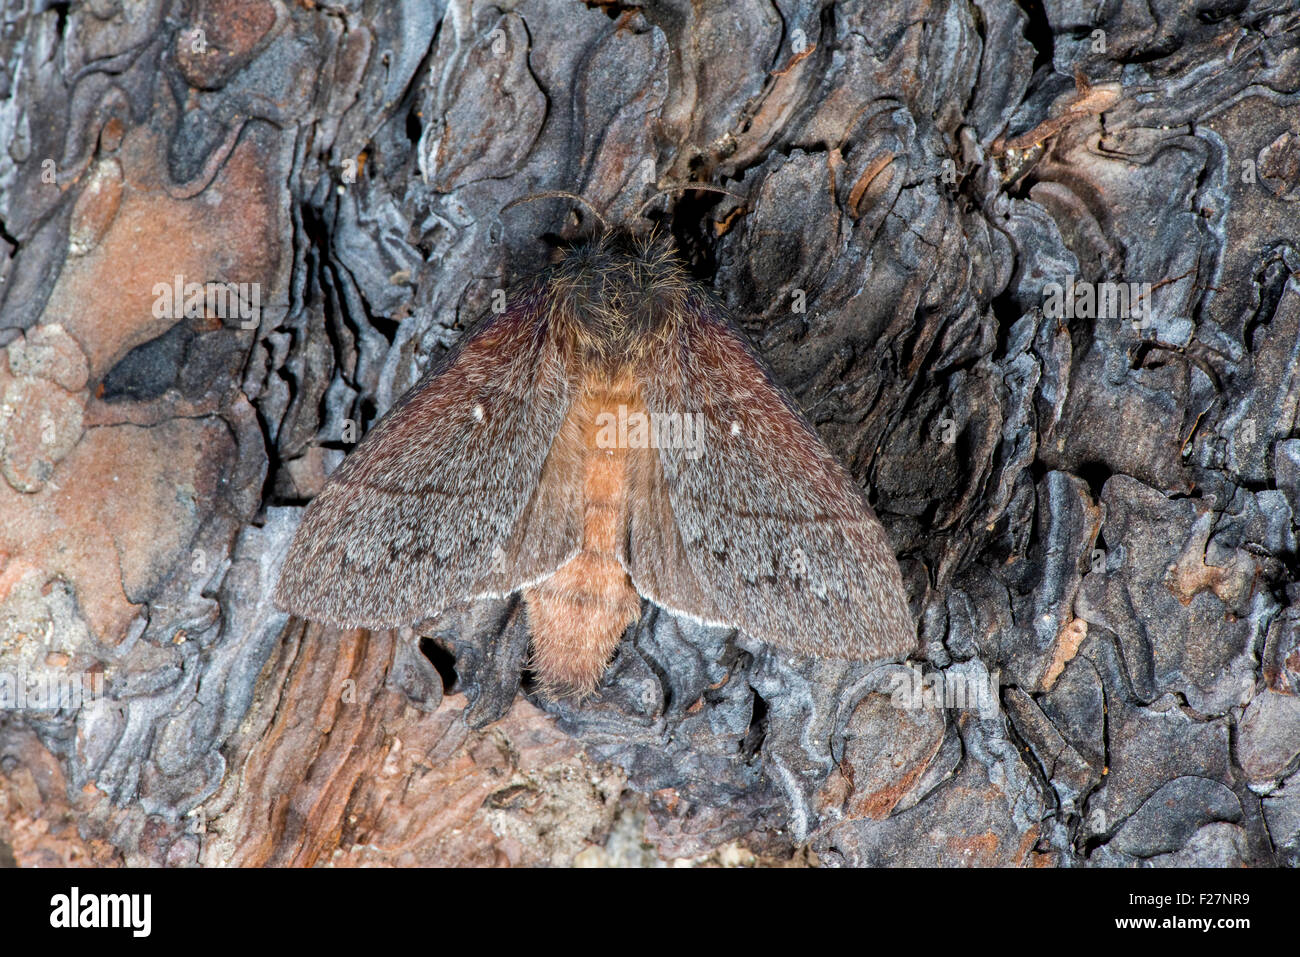 Hubbard's Small Silkmoth  Sphingicampa hubbardi Sycamore Canyon, Ruby Road, Santa Cruz County, Arizona, United - Stock Image